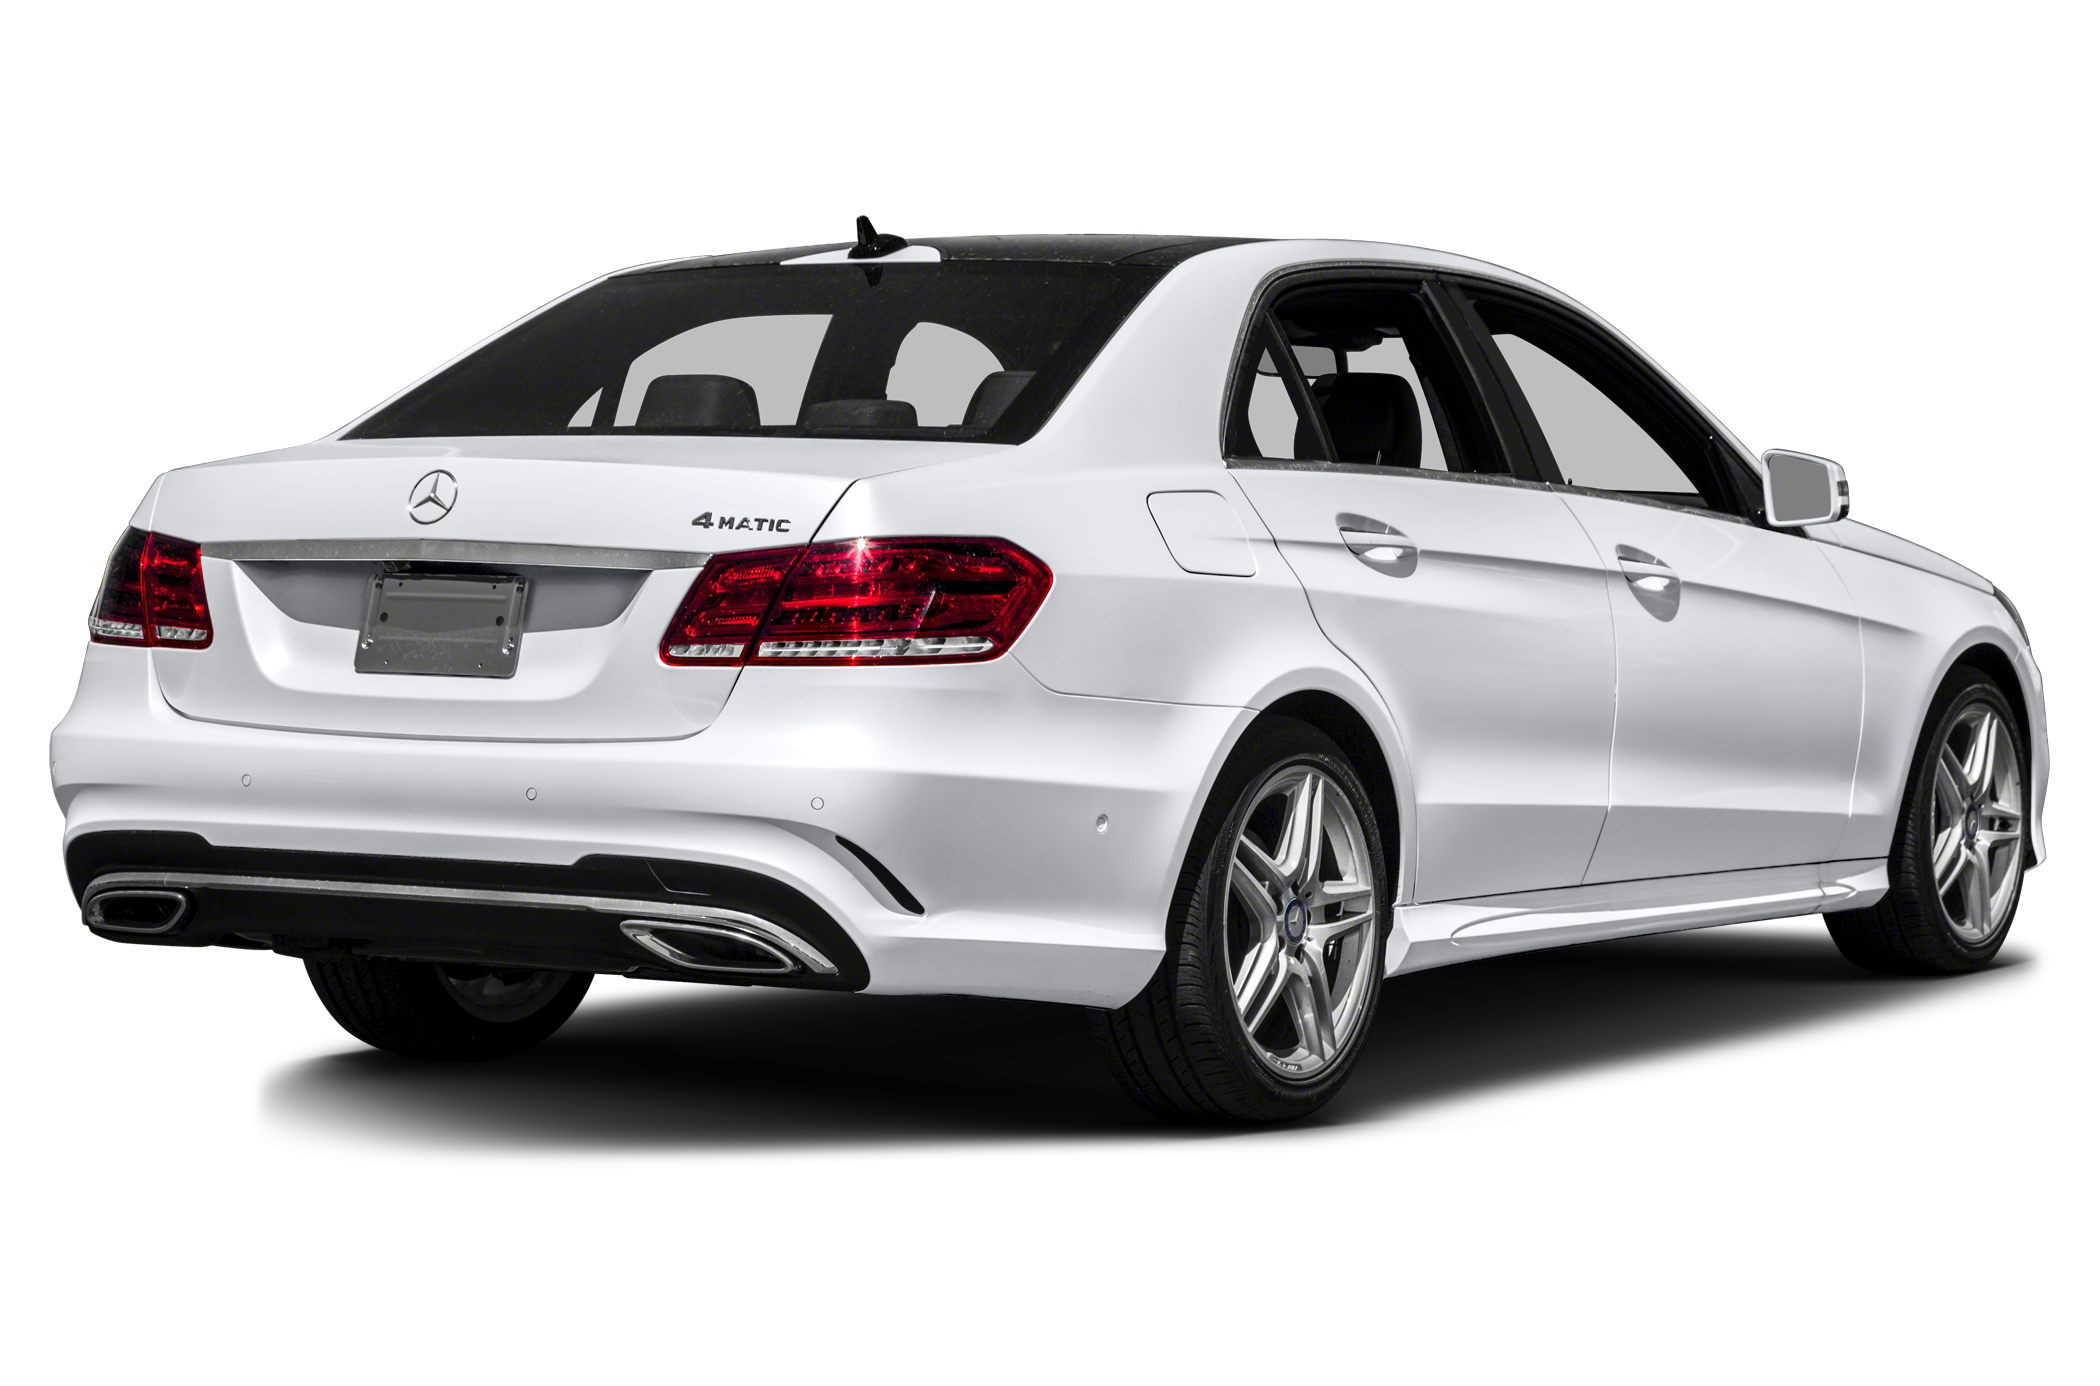 2015 MERCEDES E-Class E 350 4MATIC Vehicle Options 4WDAWD Front Side Airbag Side Head Curtain Air